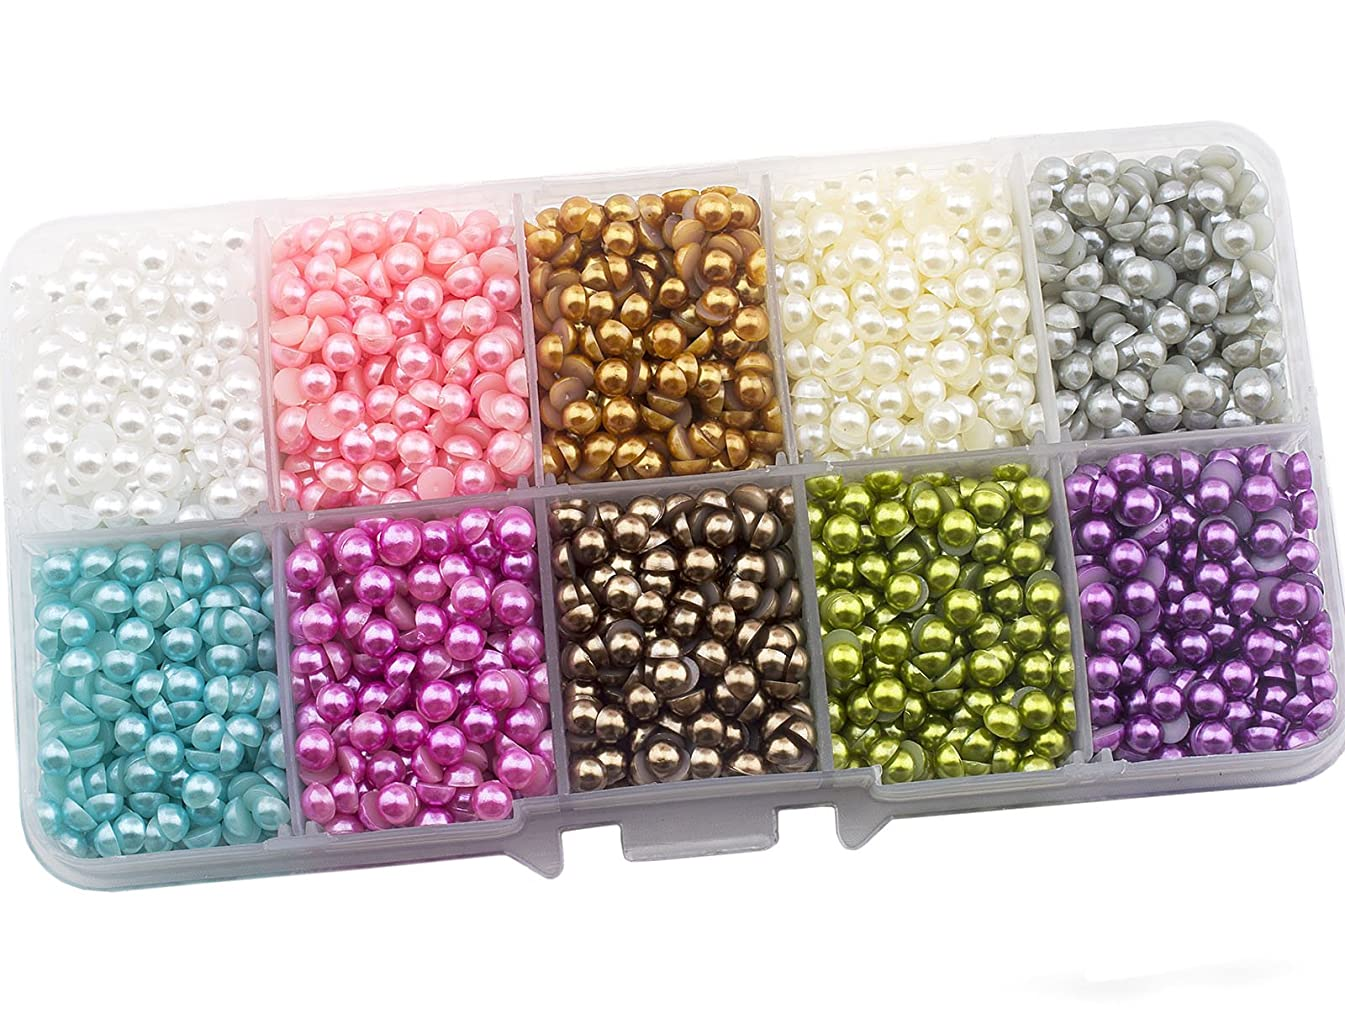 Summer-Ray 4mm Assorted Color Flat Back Pearl in Storage Box (Color Collection #3)